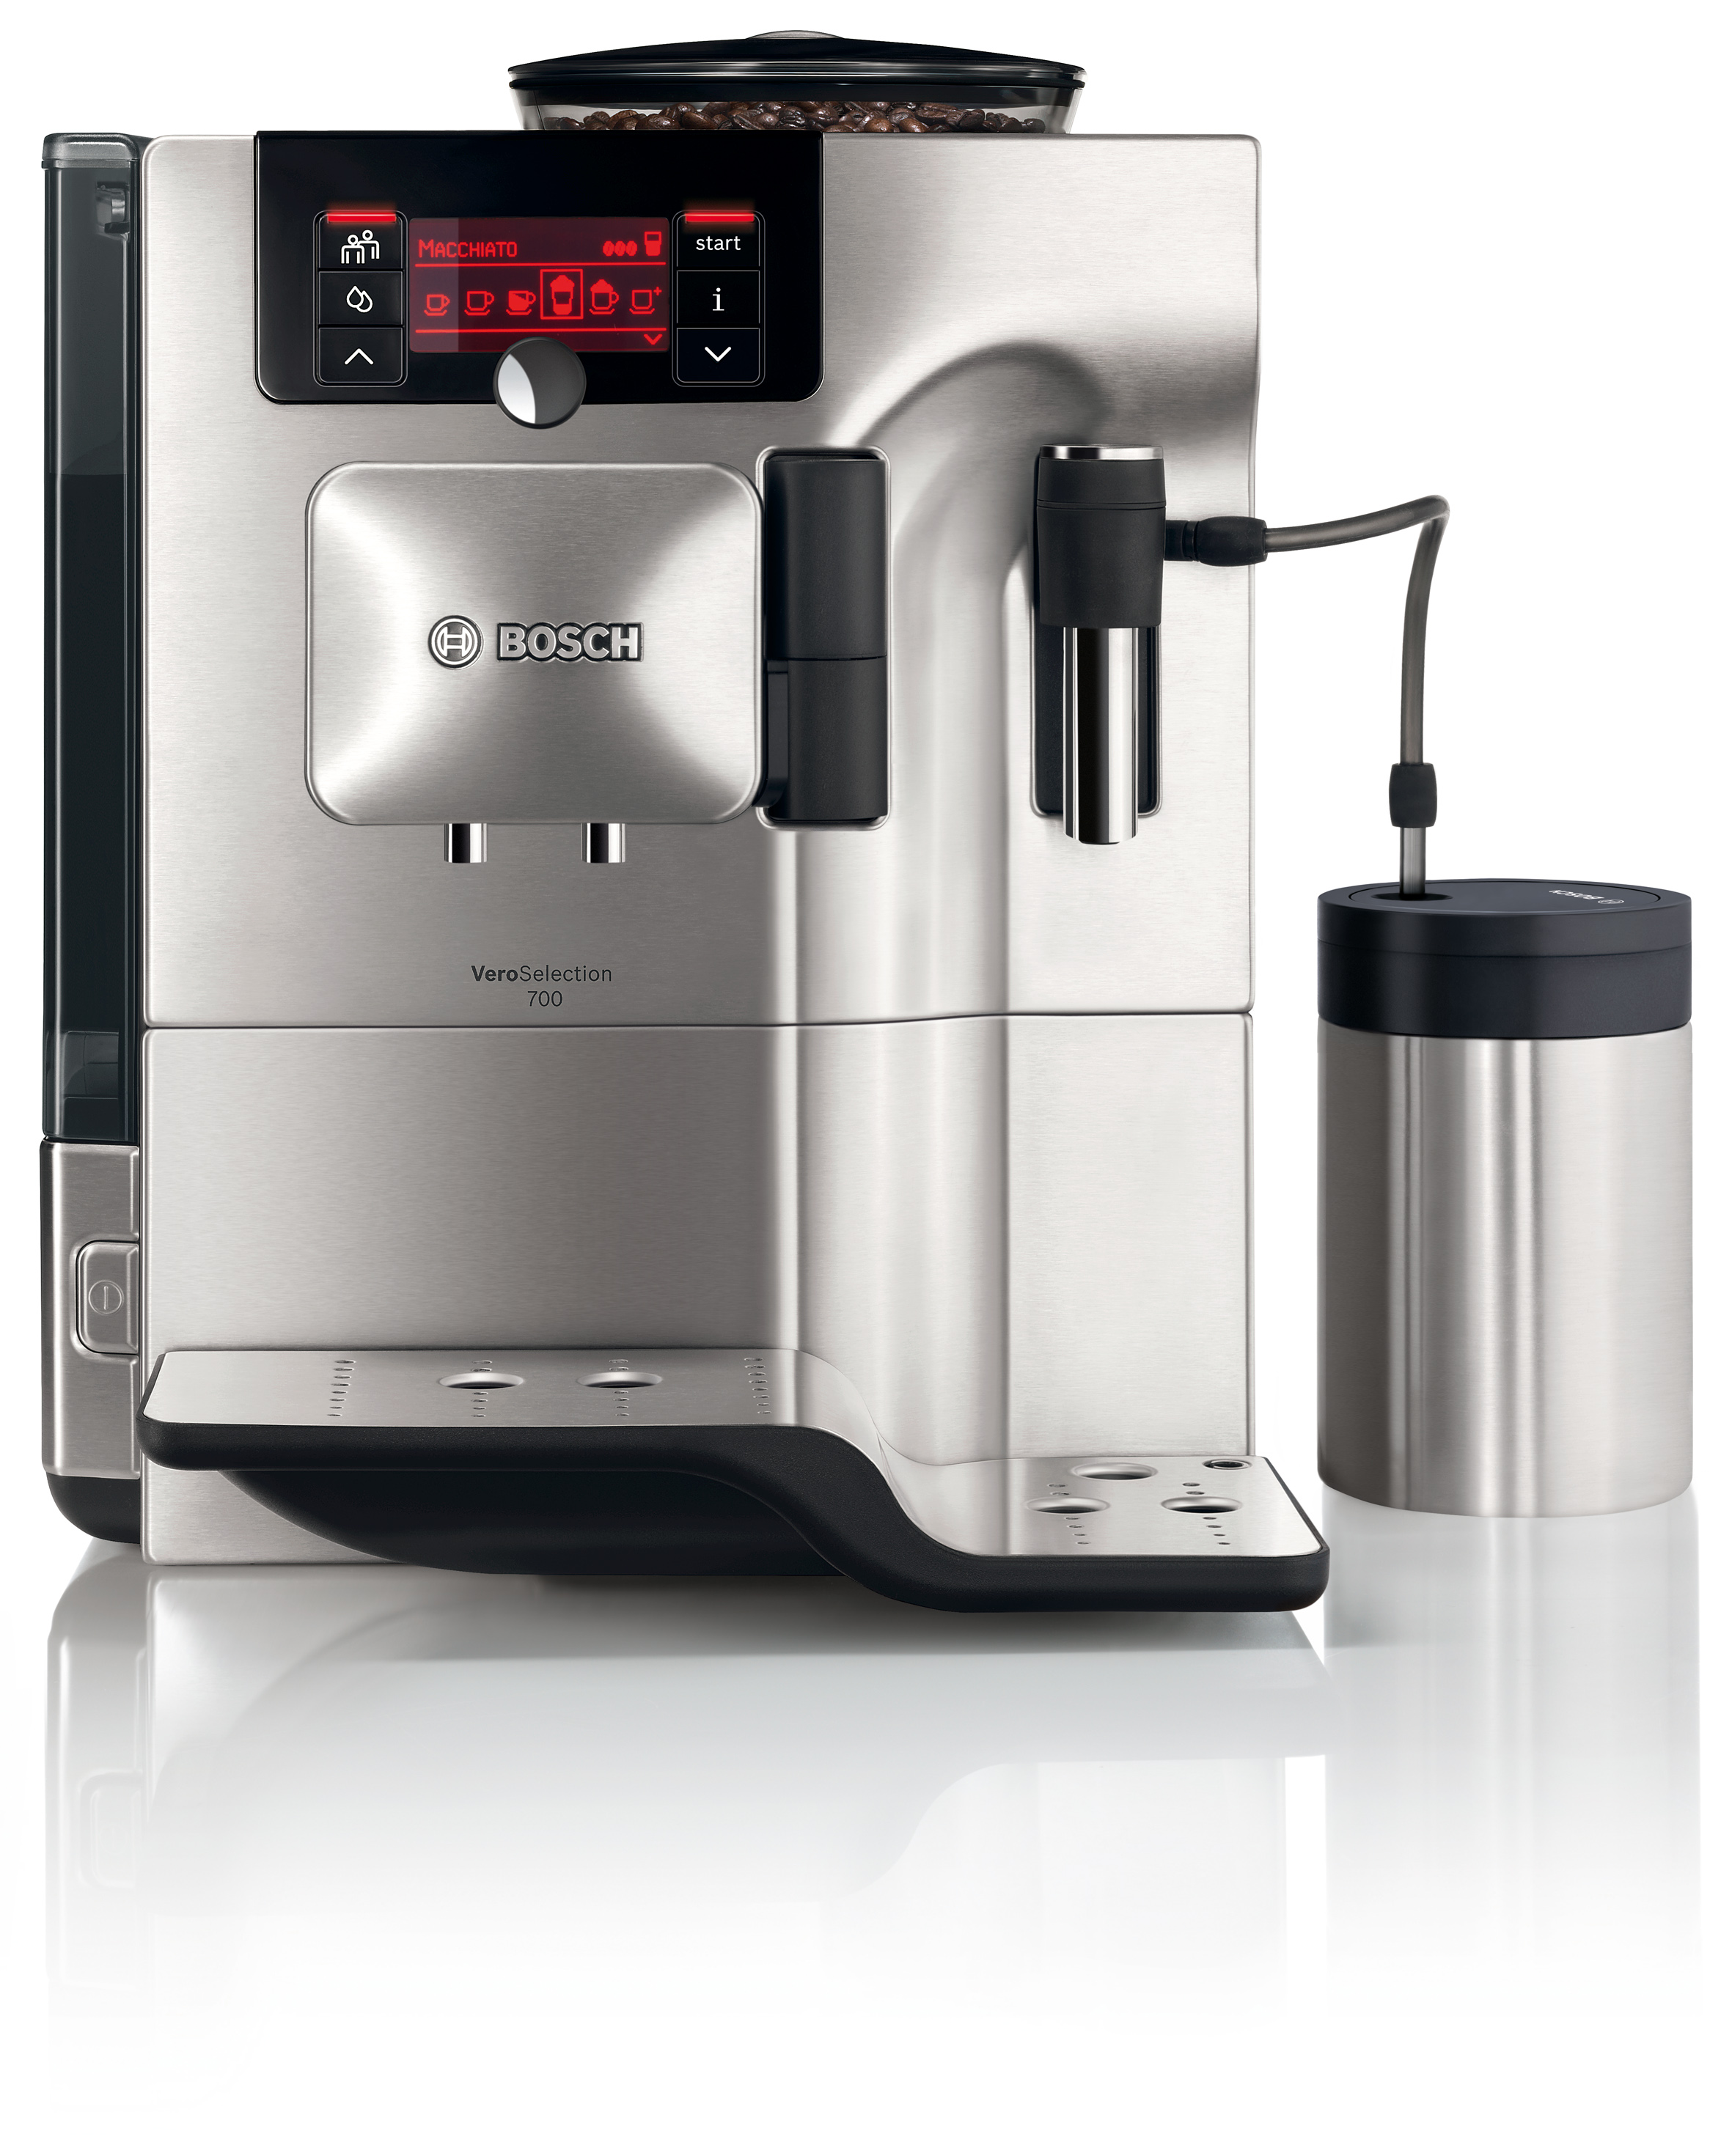 bosch vero selection 700 kaffeevollautomat 2 bosch. Black Bedroom Furniture Sets. Home Design Ideas